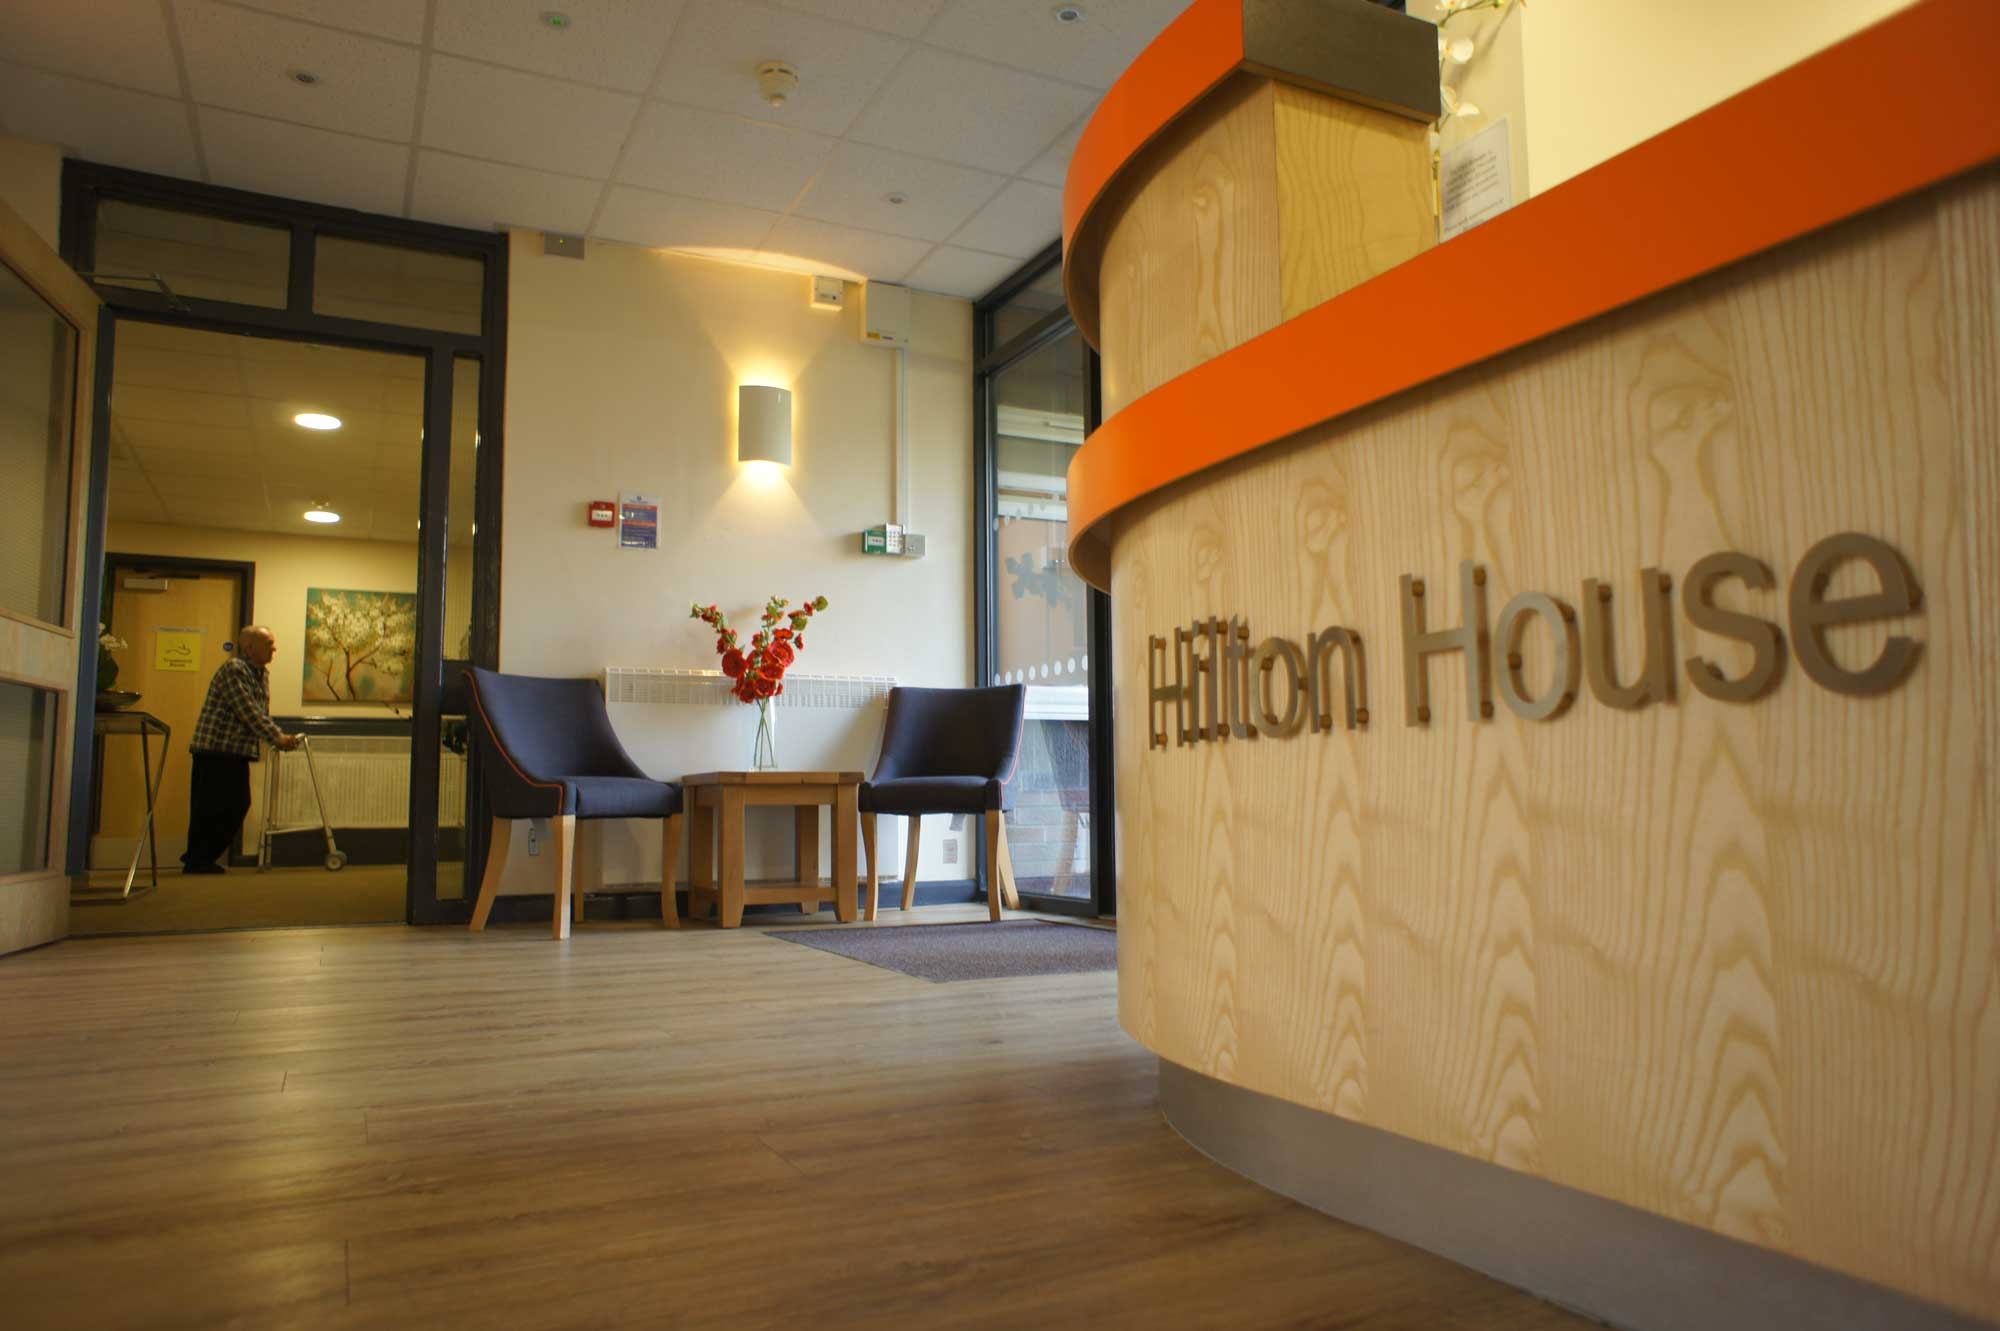 Hilton house care home entrance lobby and waiting area